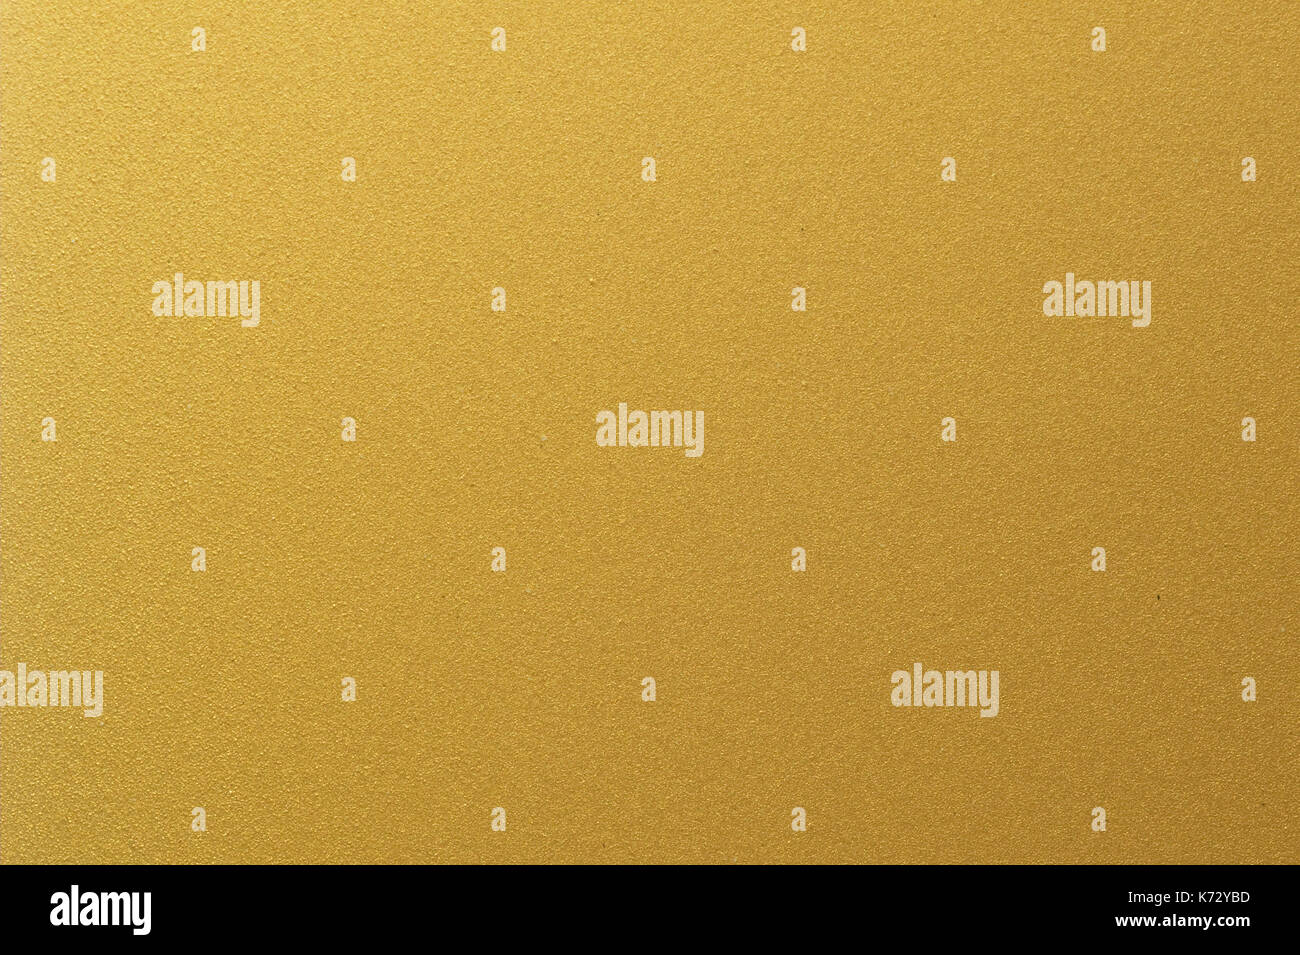 Shiny Wrapping Paper Stock Photos & Shiny Wrapping Paper Stock ...